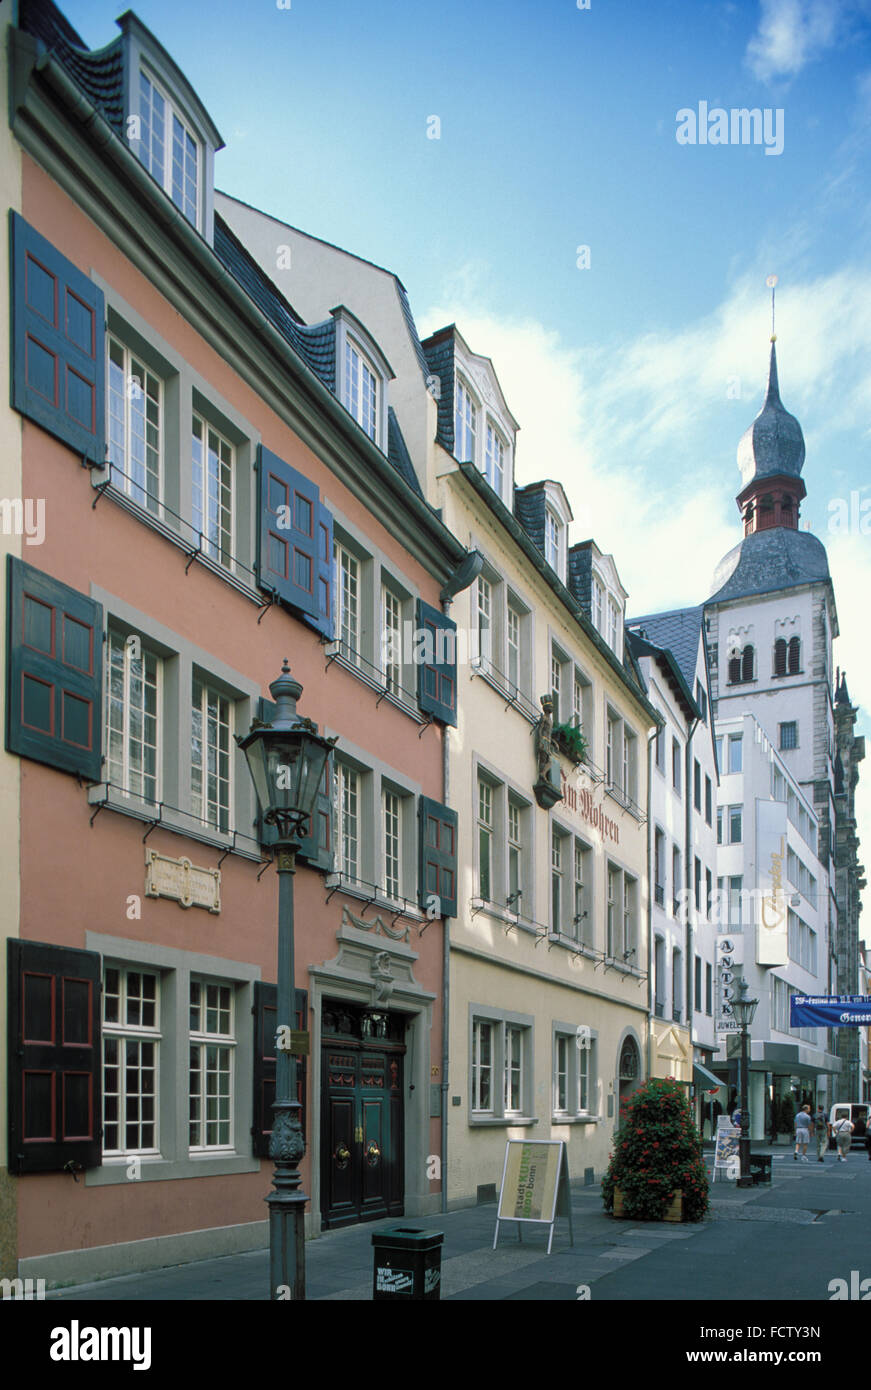 His Birthplace In Bonn Stock Photos & His Birthplace In Bonn